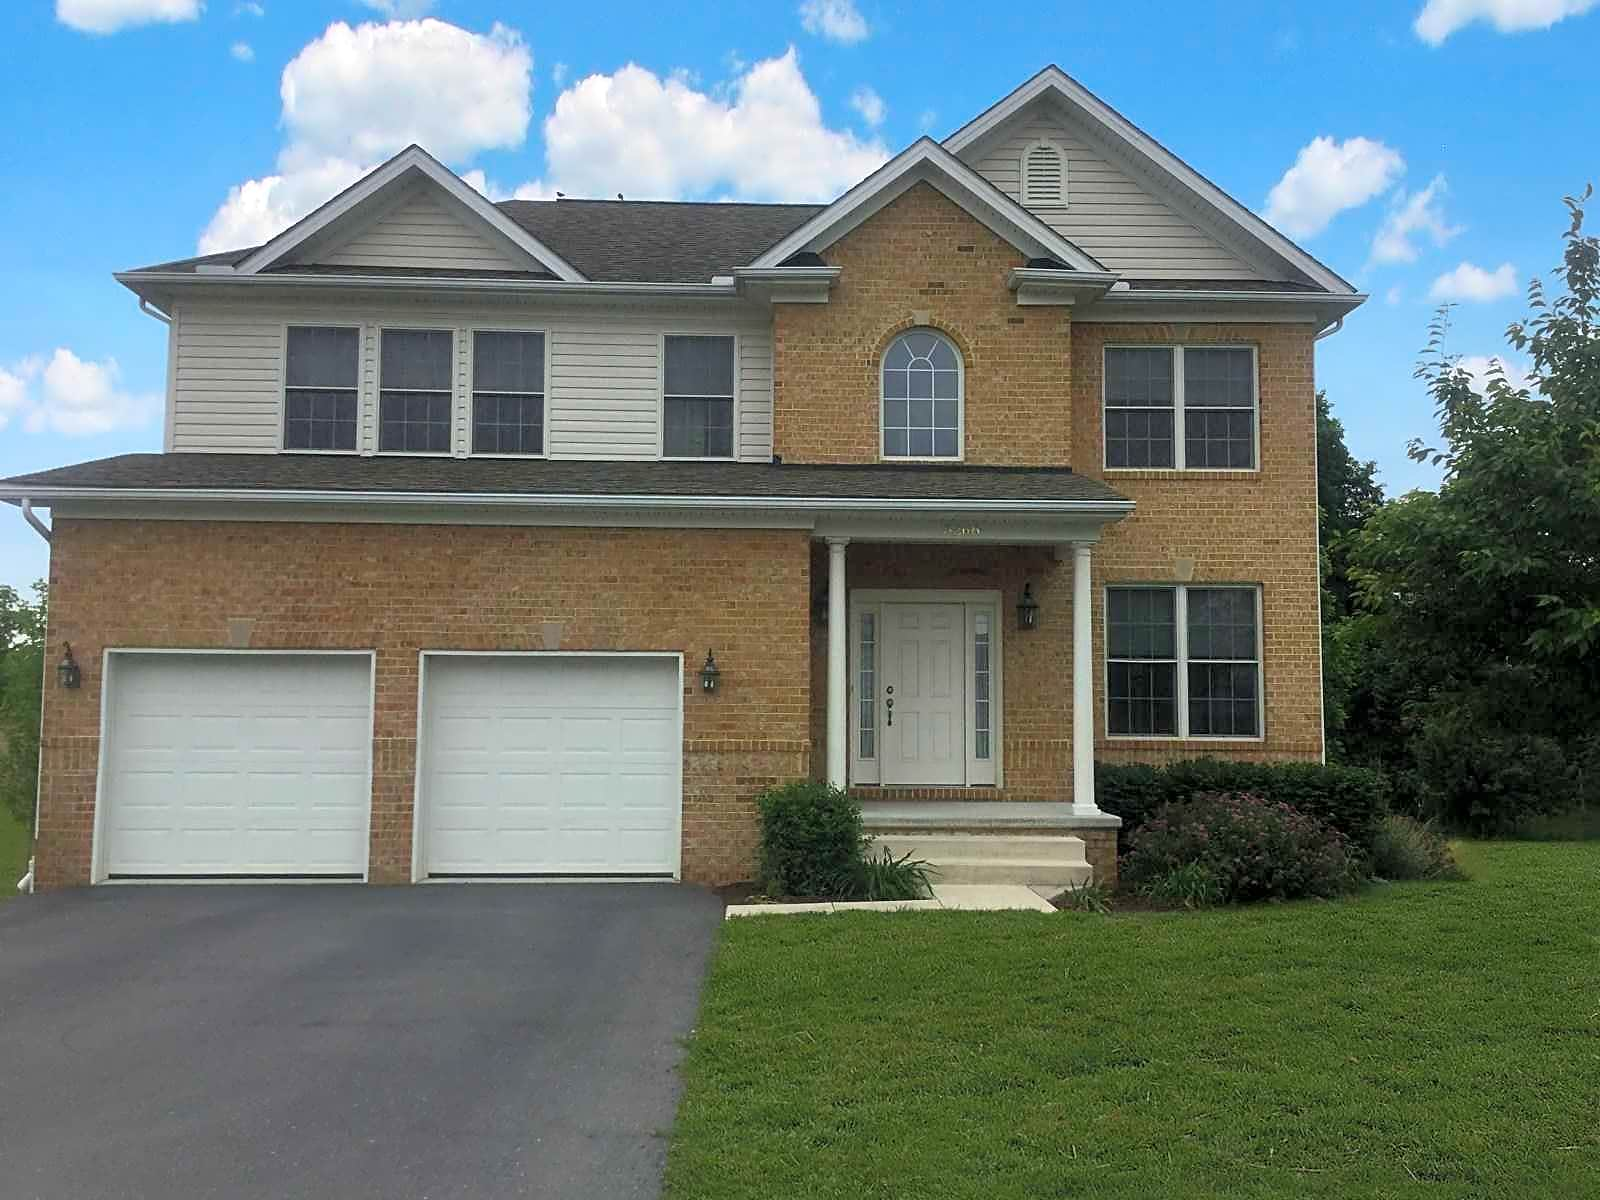 Apartments Near Ship Highlands of Greenvillage for Shippensburg University of Pennsylvania Students in Shippensburg, PA